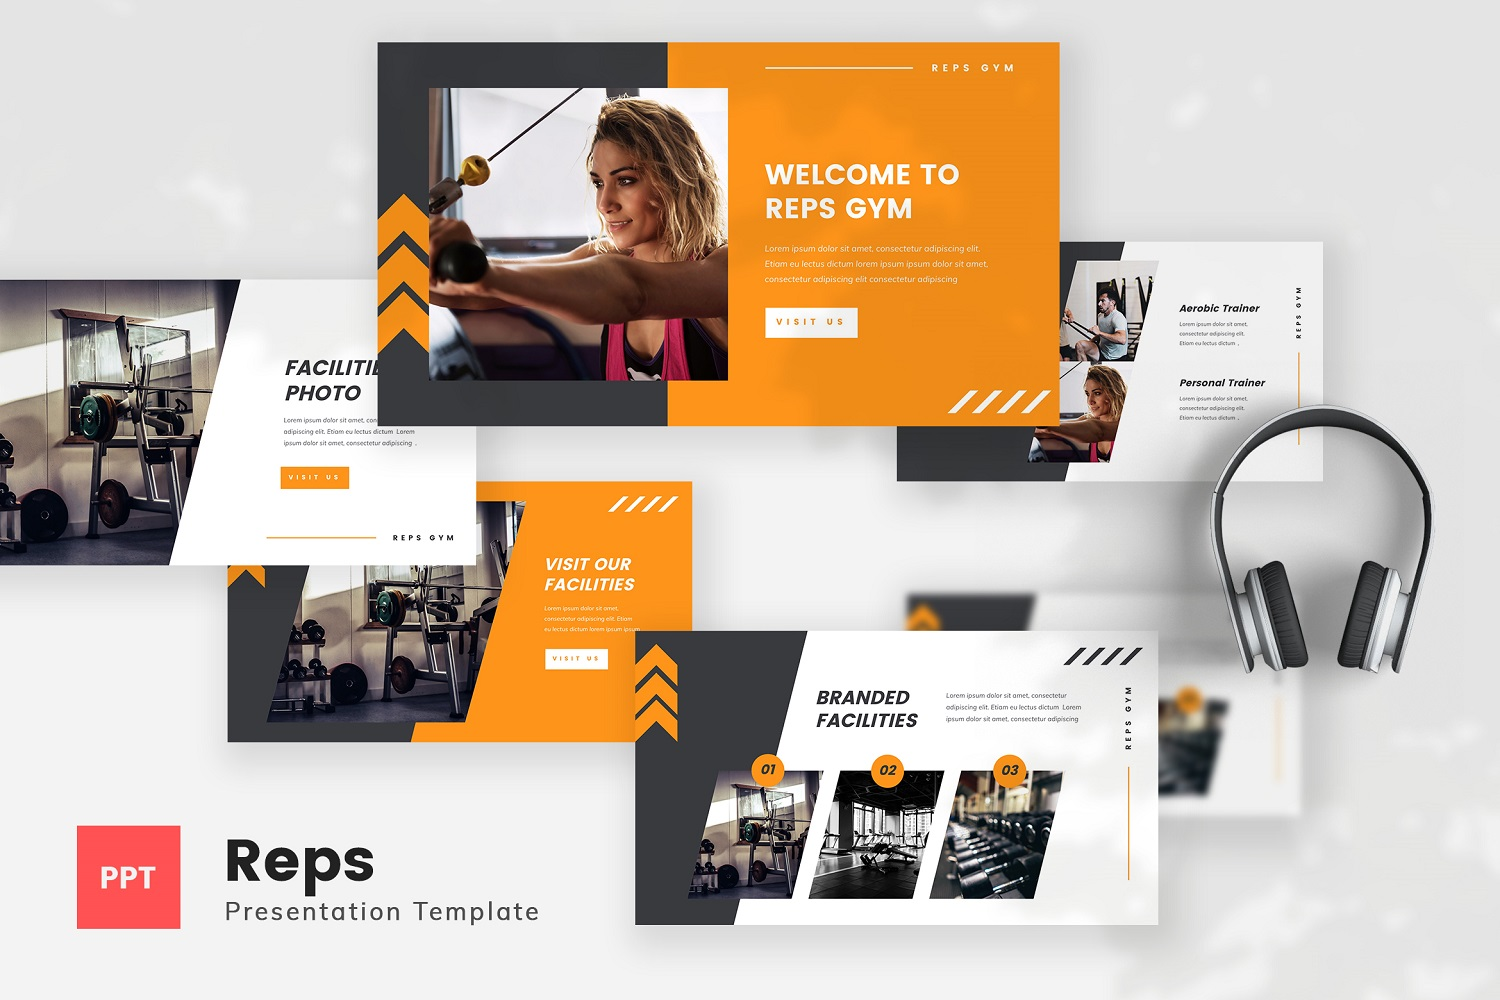 Reps - Gym PowerPoint Template